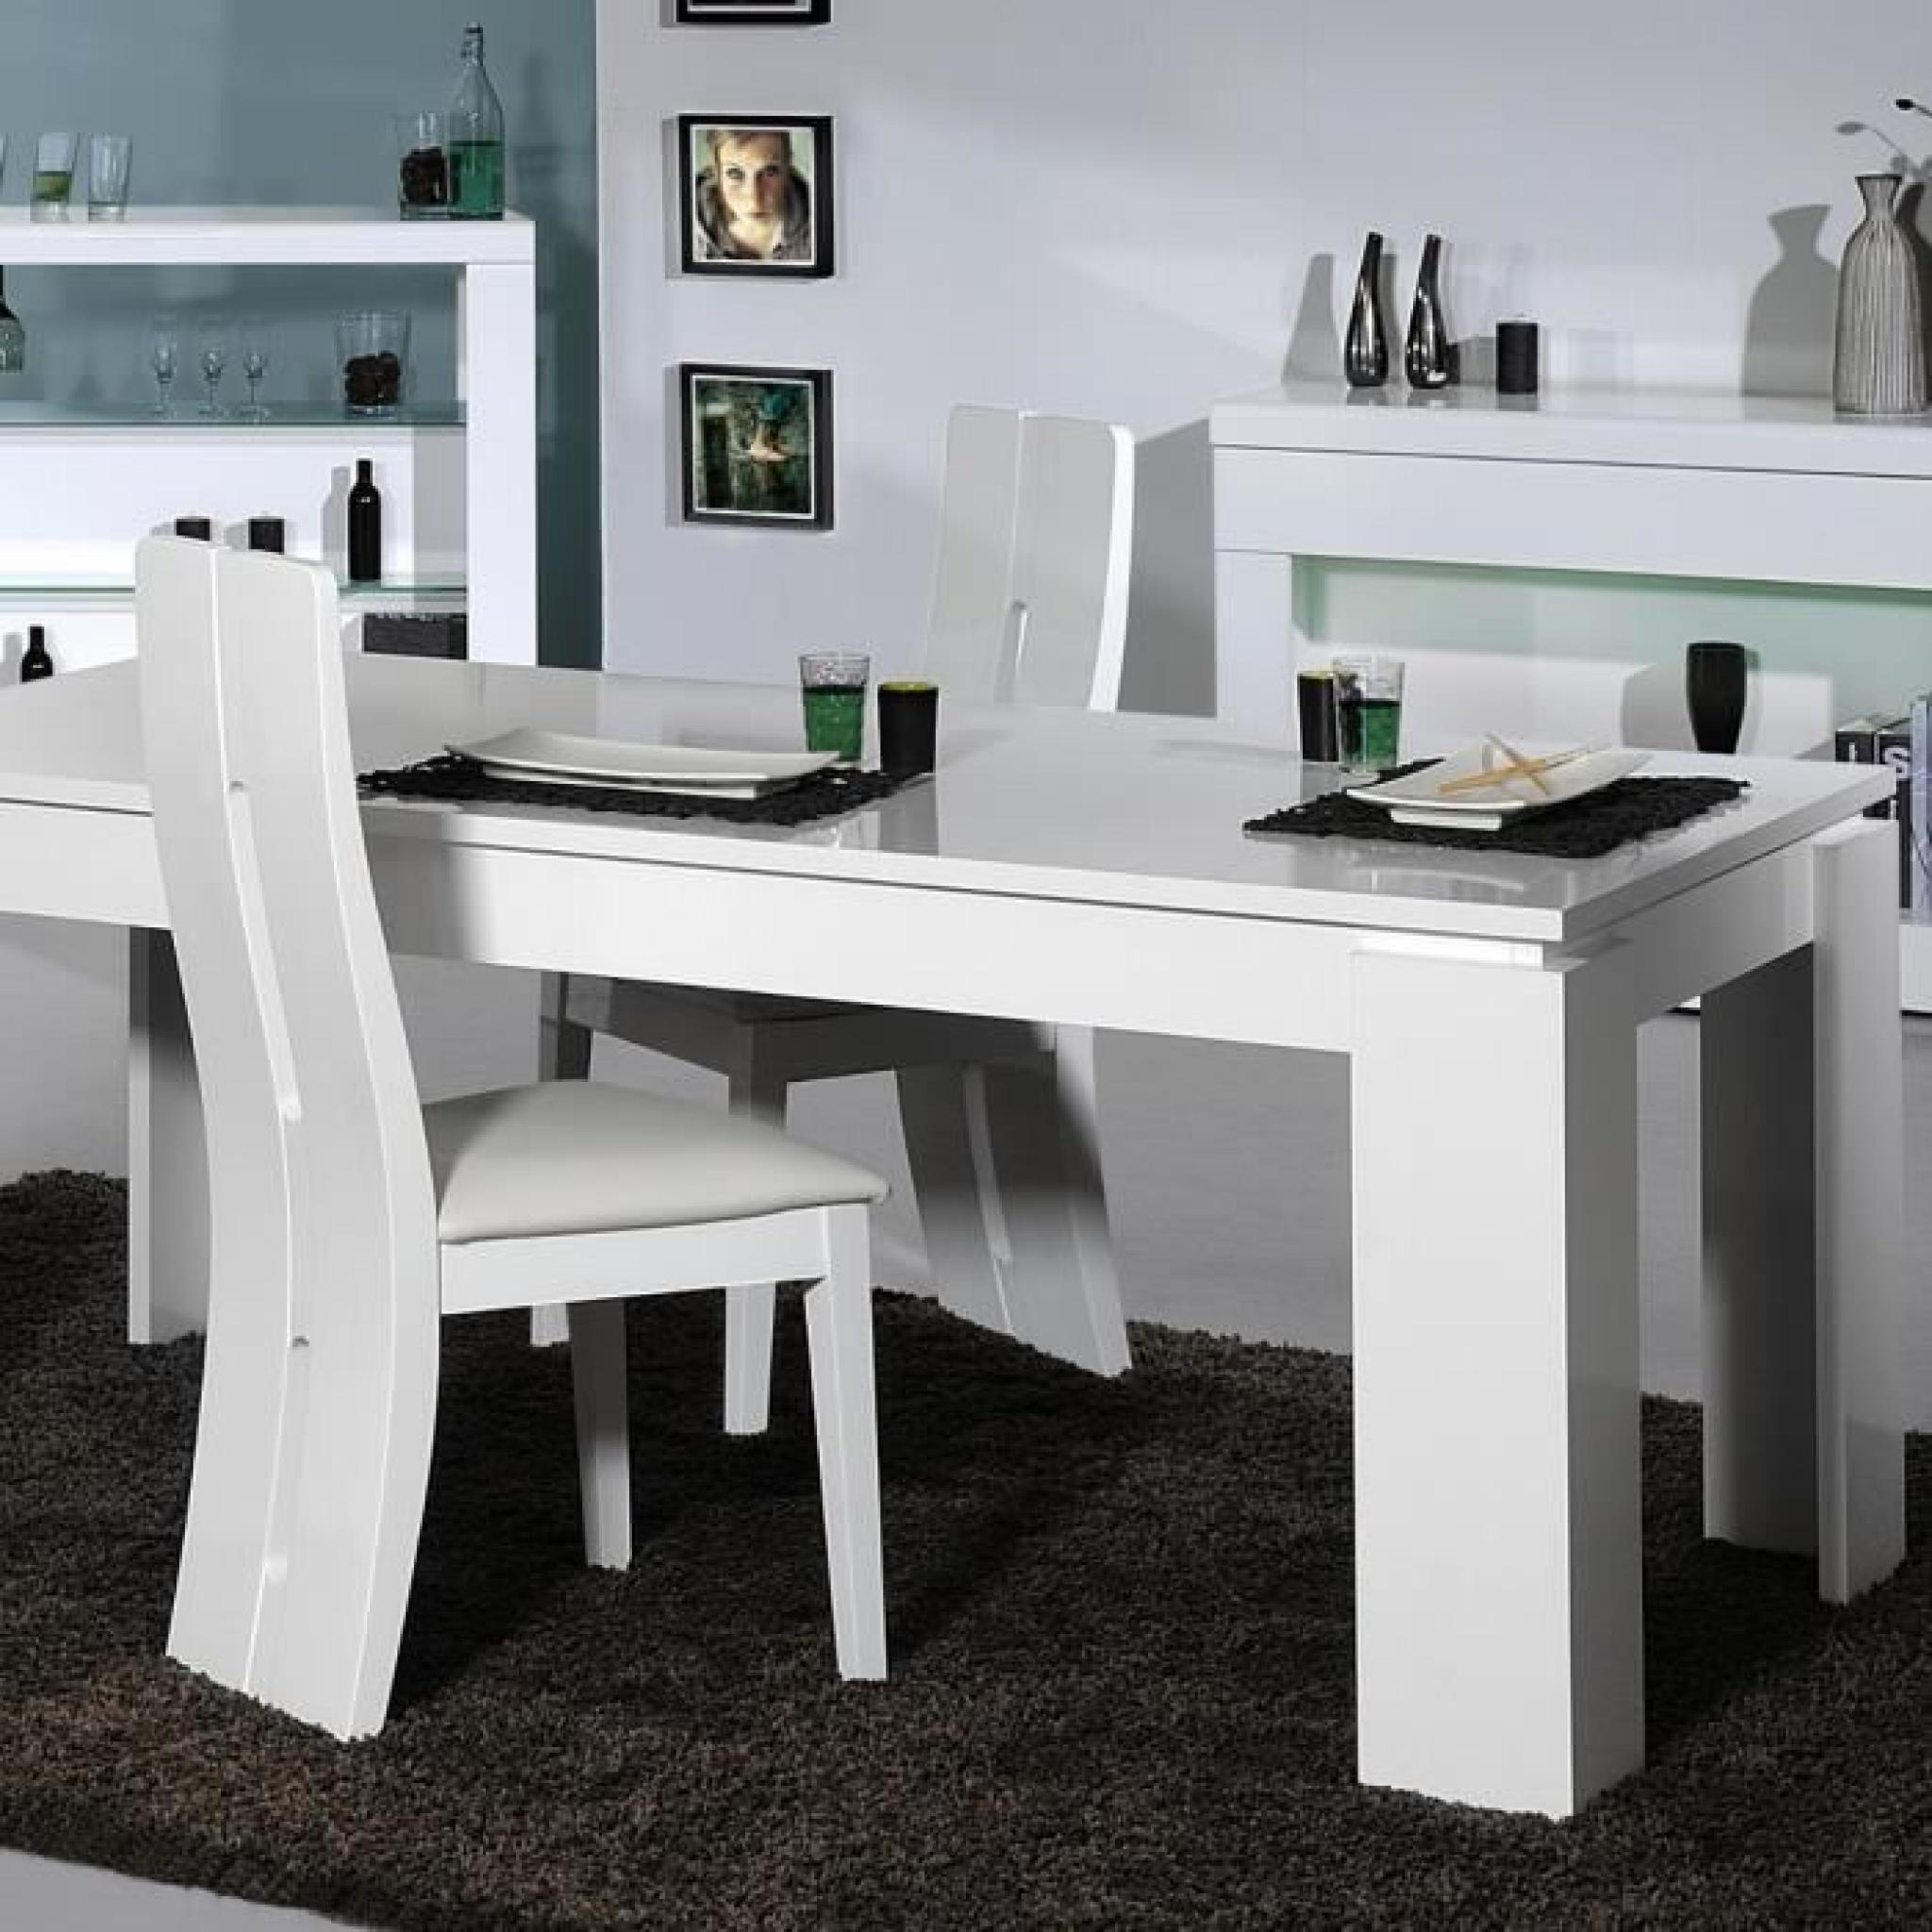 Table a manger et chaises pas cher maison design for Table a manger chaises